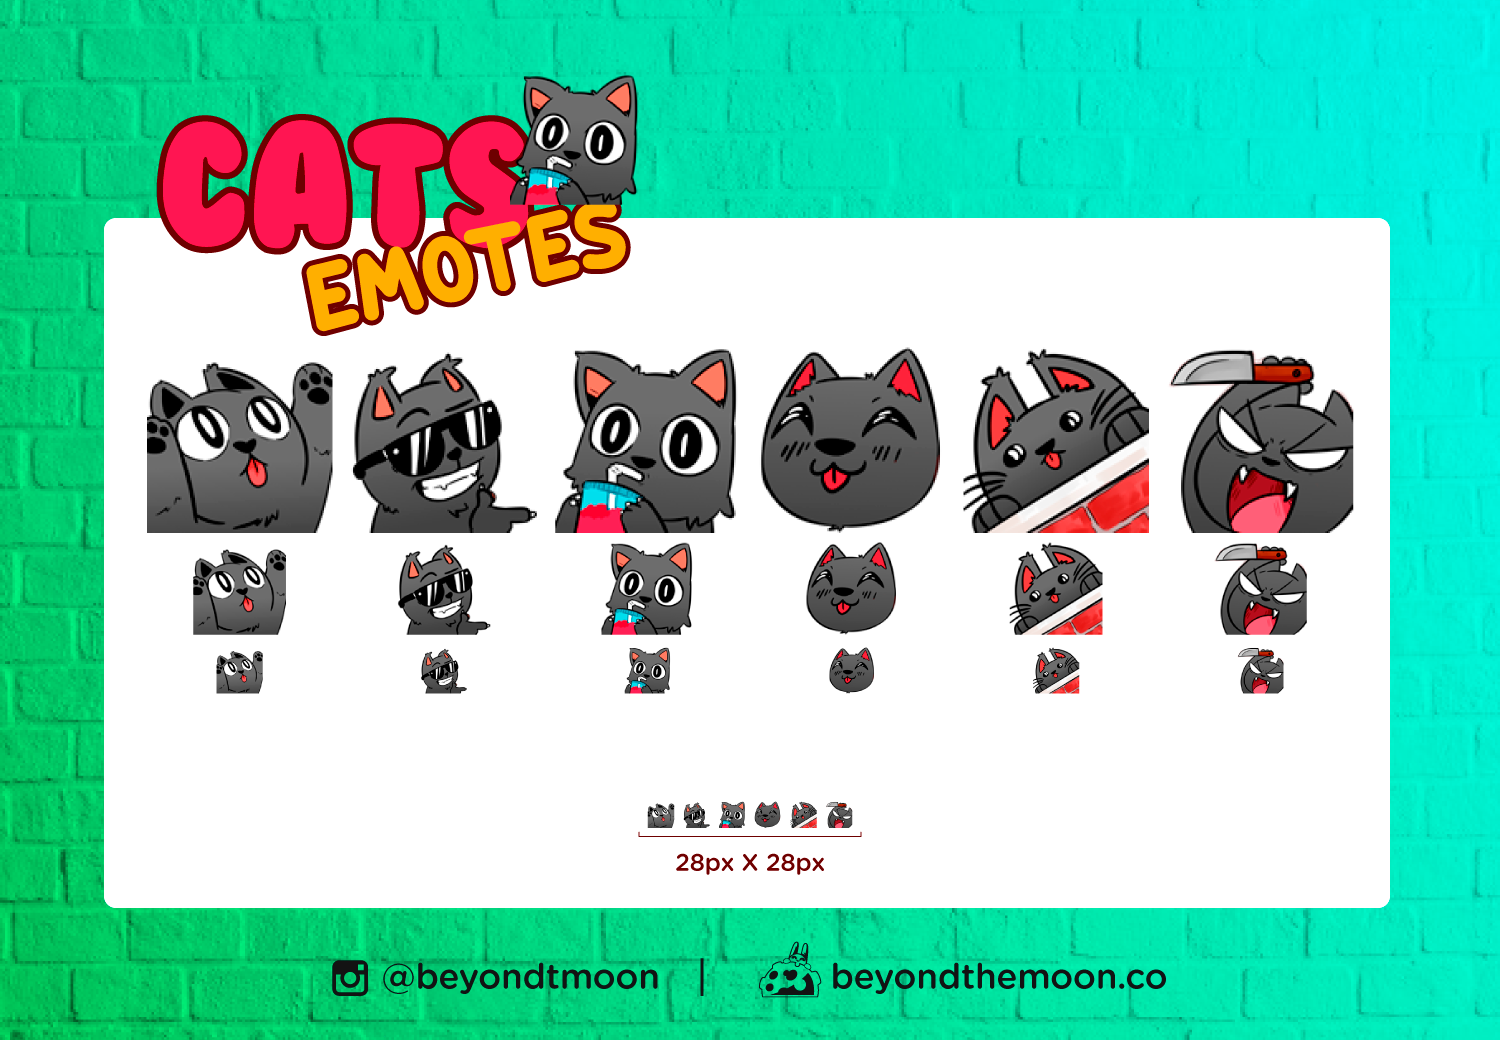 6 Cute Black Cats For Twitch Discord And Youtube Pack 1 In 2020 Cute Black Cats Black Cat Cat Hug